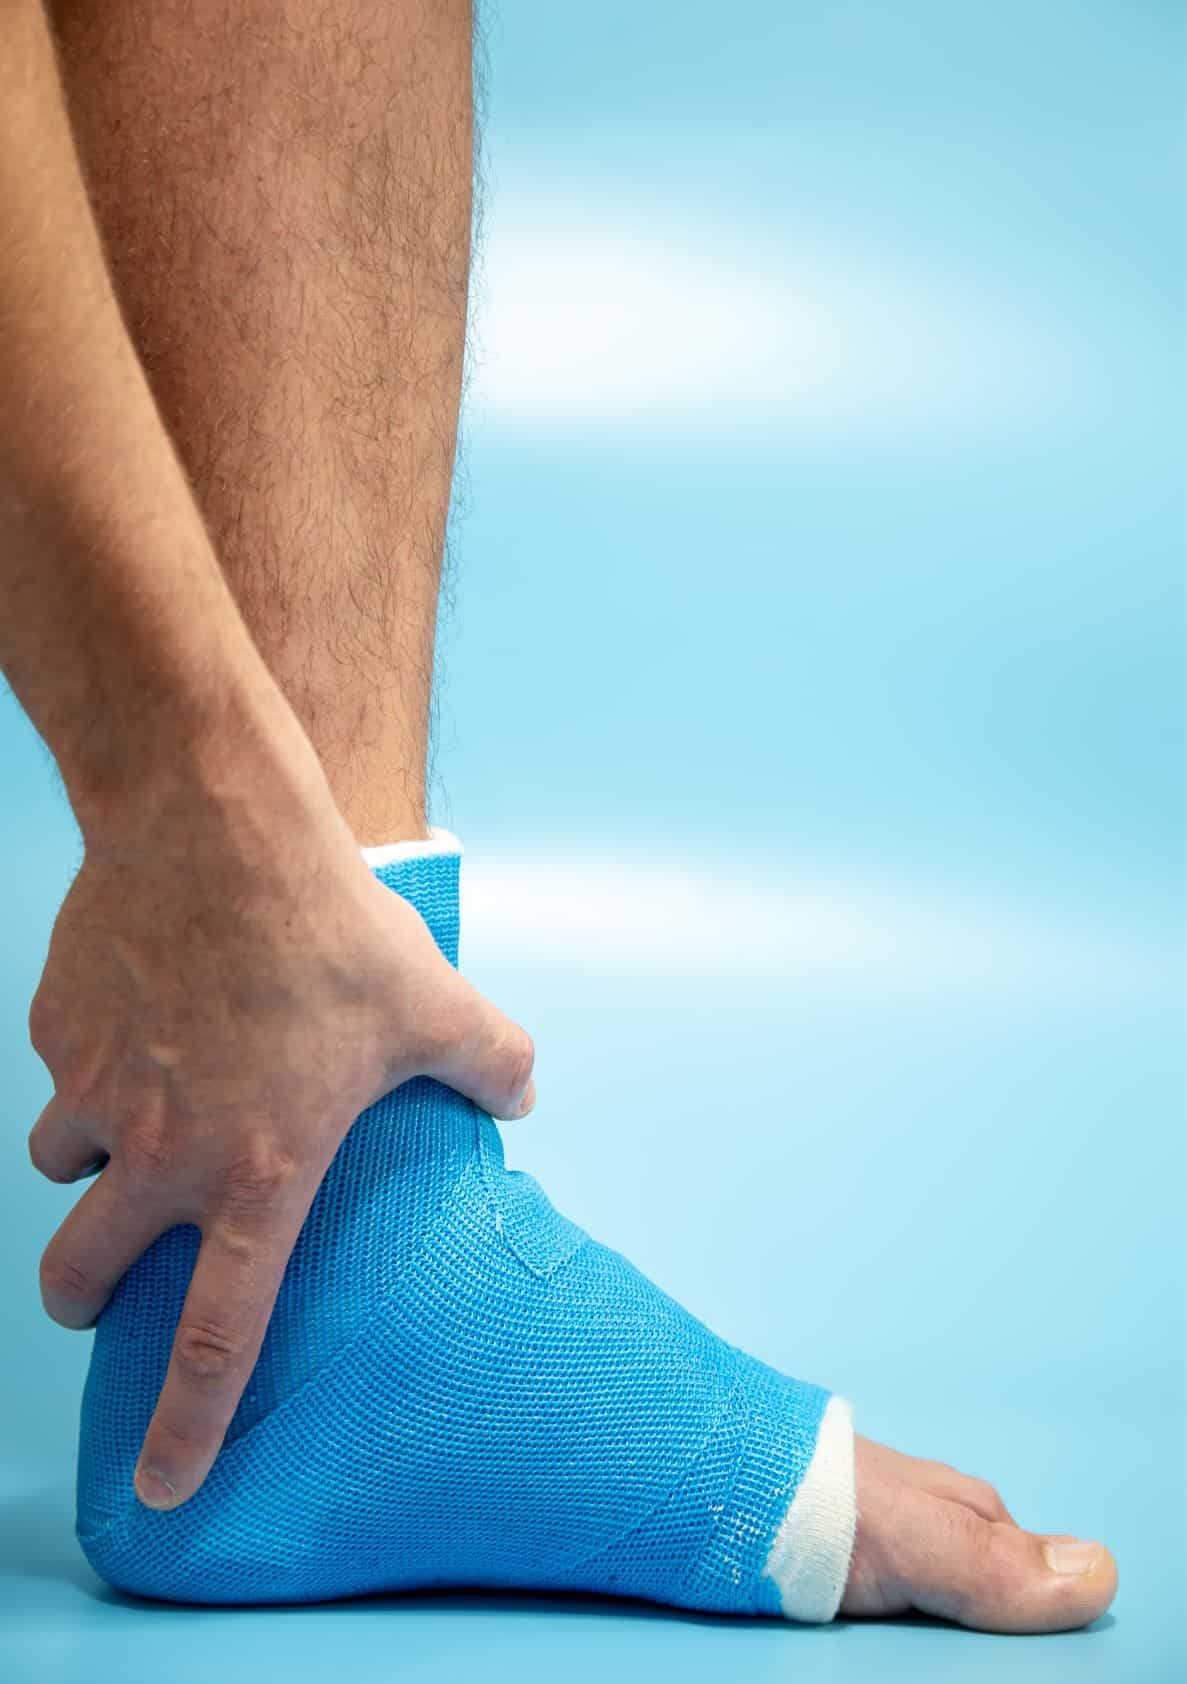 What Is a Non-Healing Fracture?